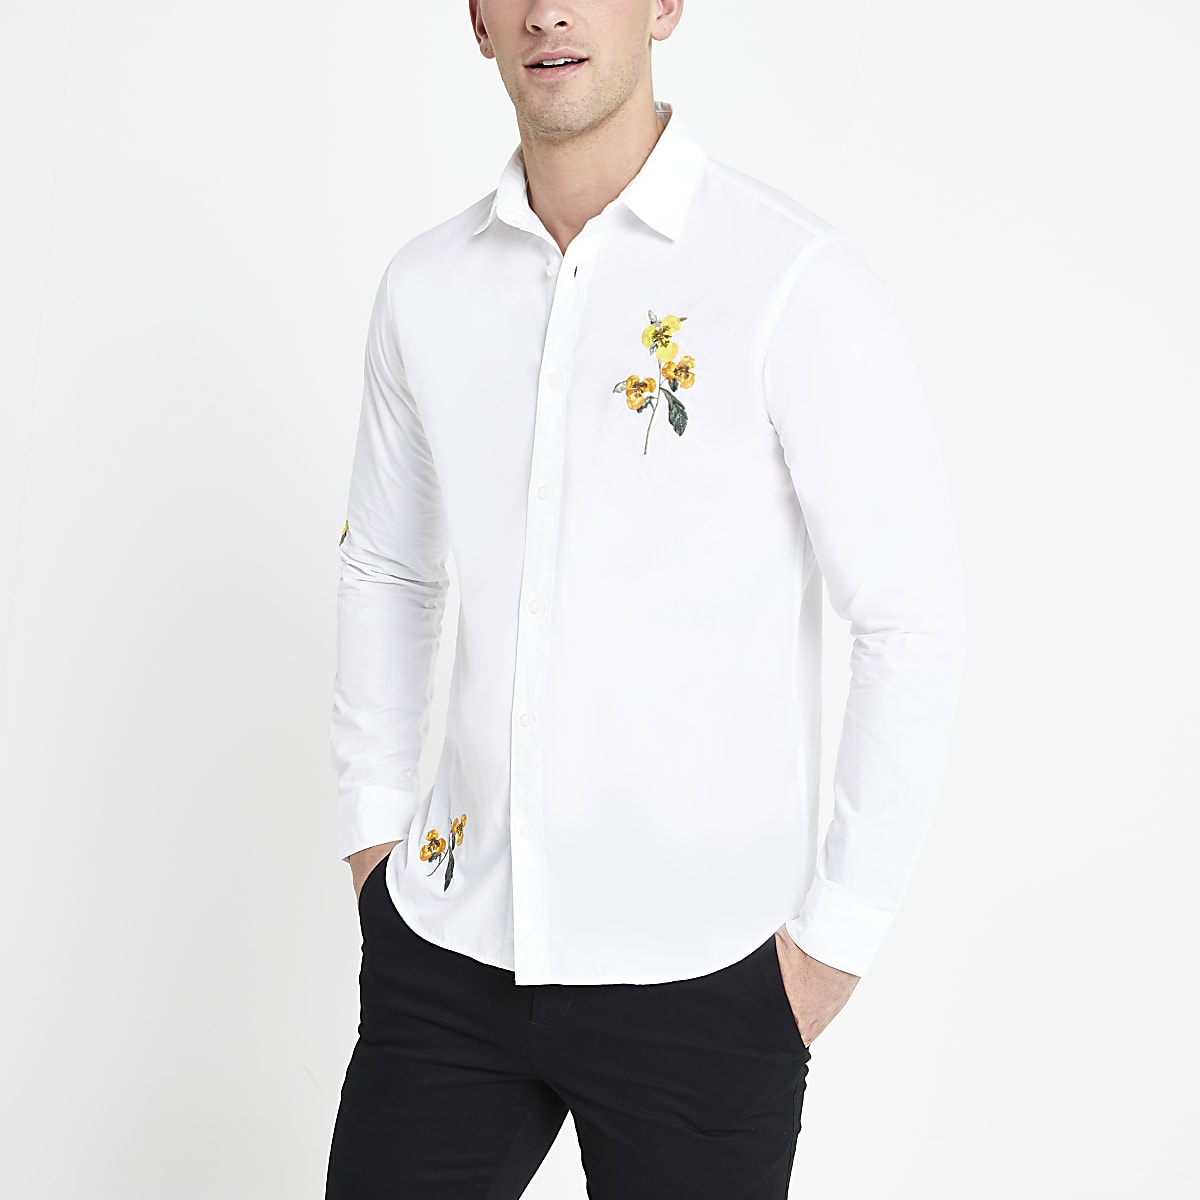 Selected Homme white long sleeve shirt